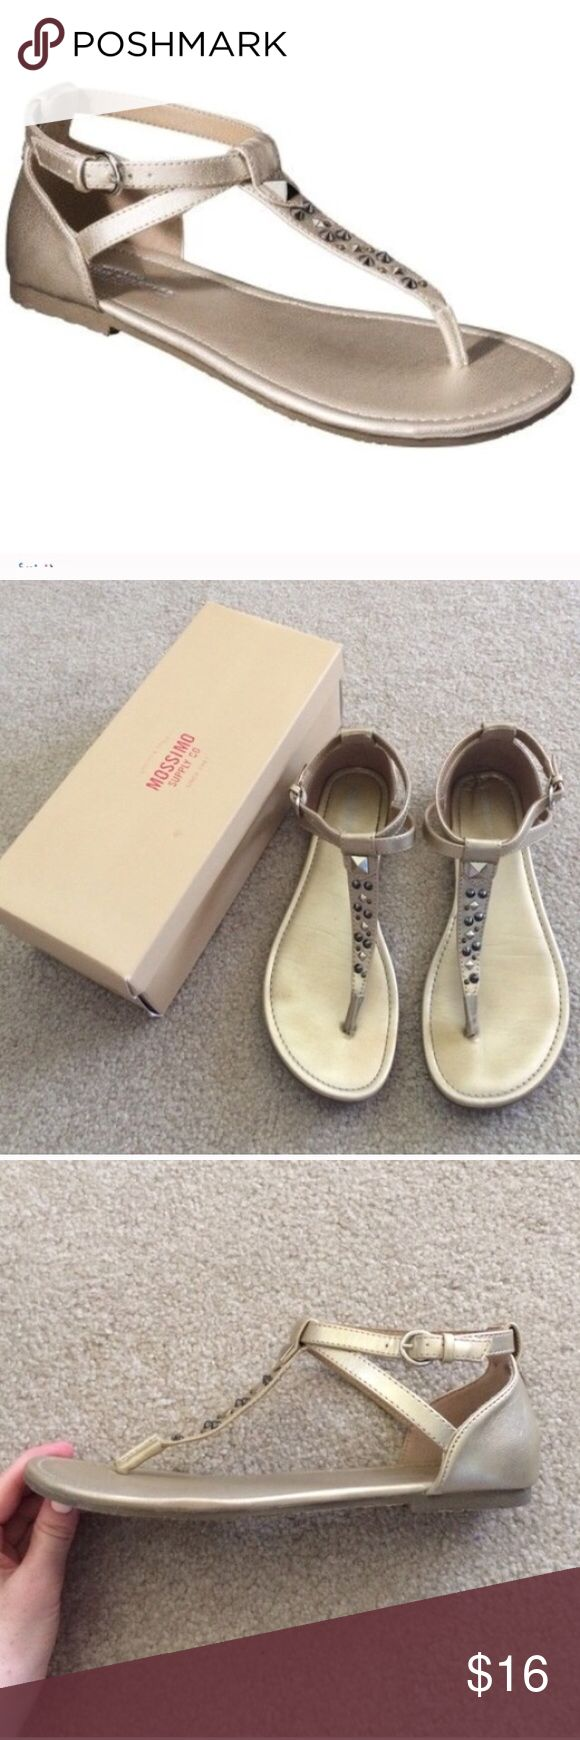 🎉Mossimo Okal Gold Studded Sandals Metallic 8 1/2 🎉DELETING TODAY Mossimo from Target Okal style Gold sandals Studded detail Strappy design Size 8 1/2 Worn twice Come with box Perfect for summer  Please ask any questions  💲Price is firm unless bundled💲 🚫No Trades🚫 📦Ask About Bundle Discounts💰 Mossimo Supply Co. Shoes Sandals